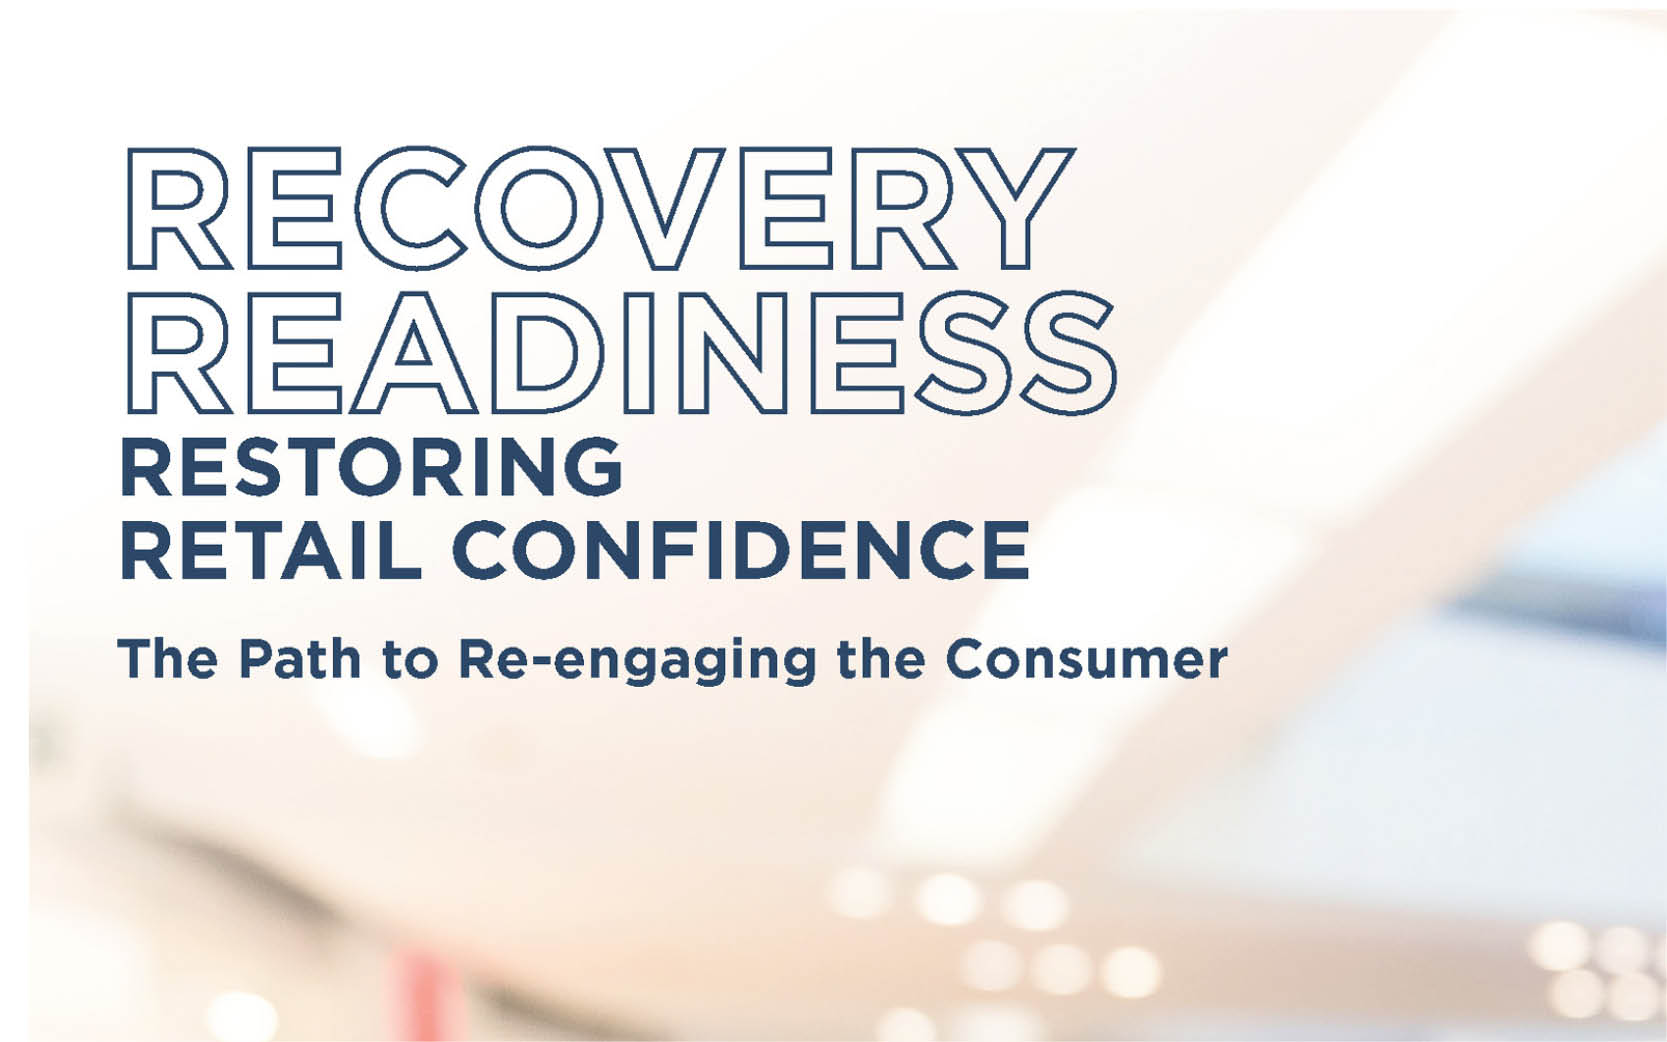 Image - Restoring Retail Confidence